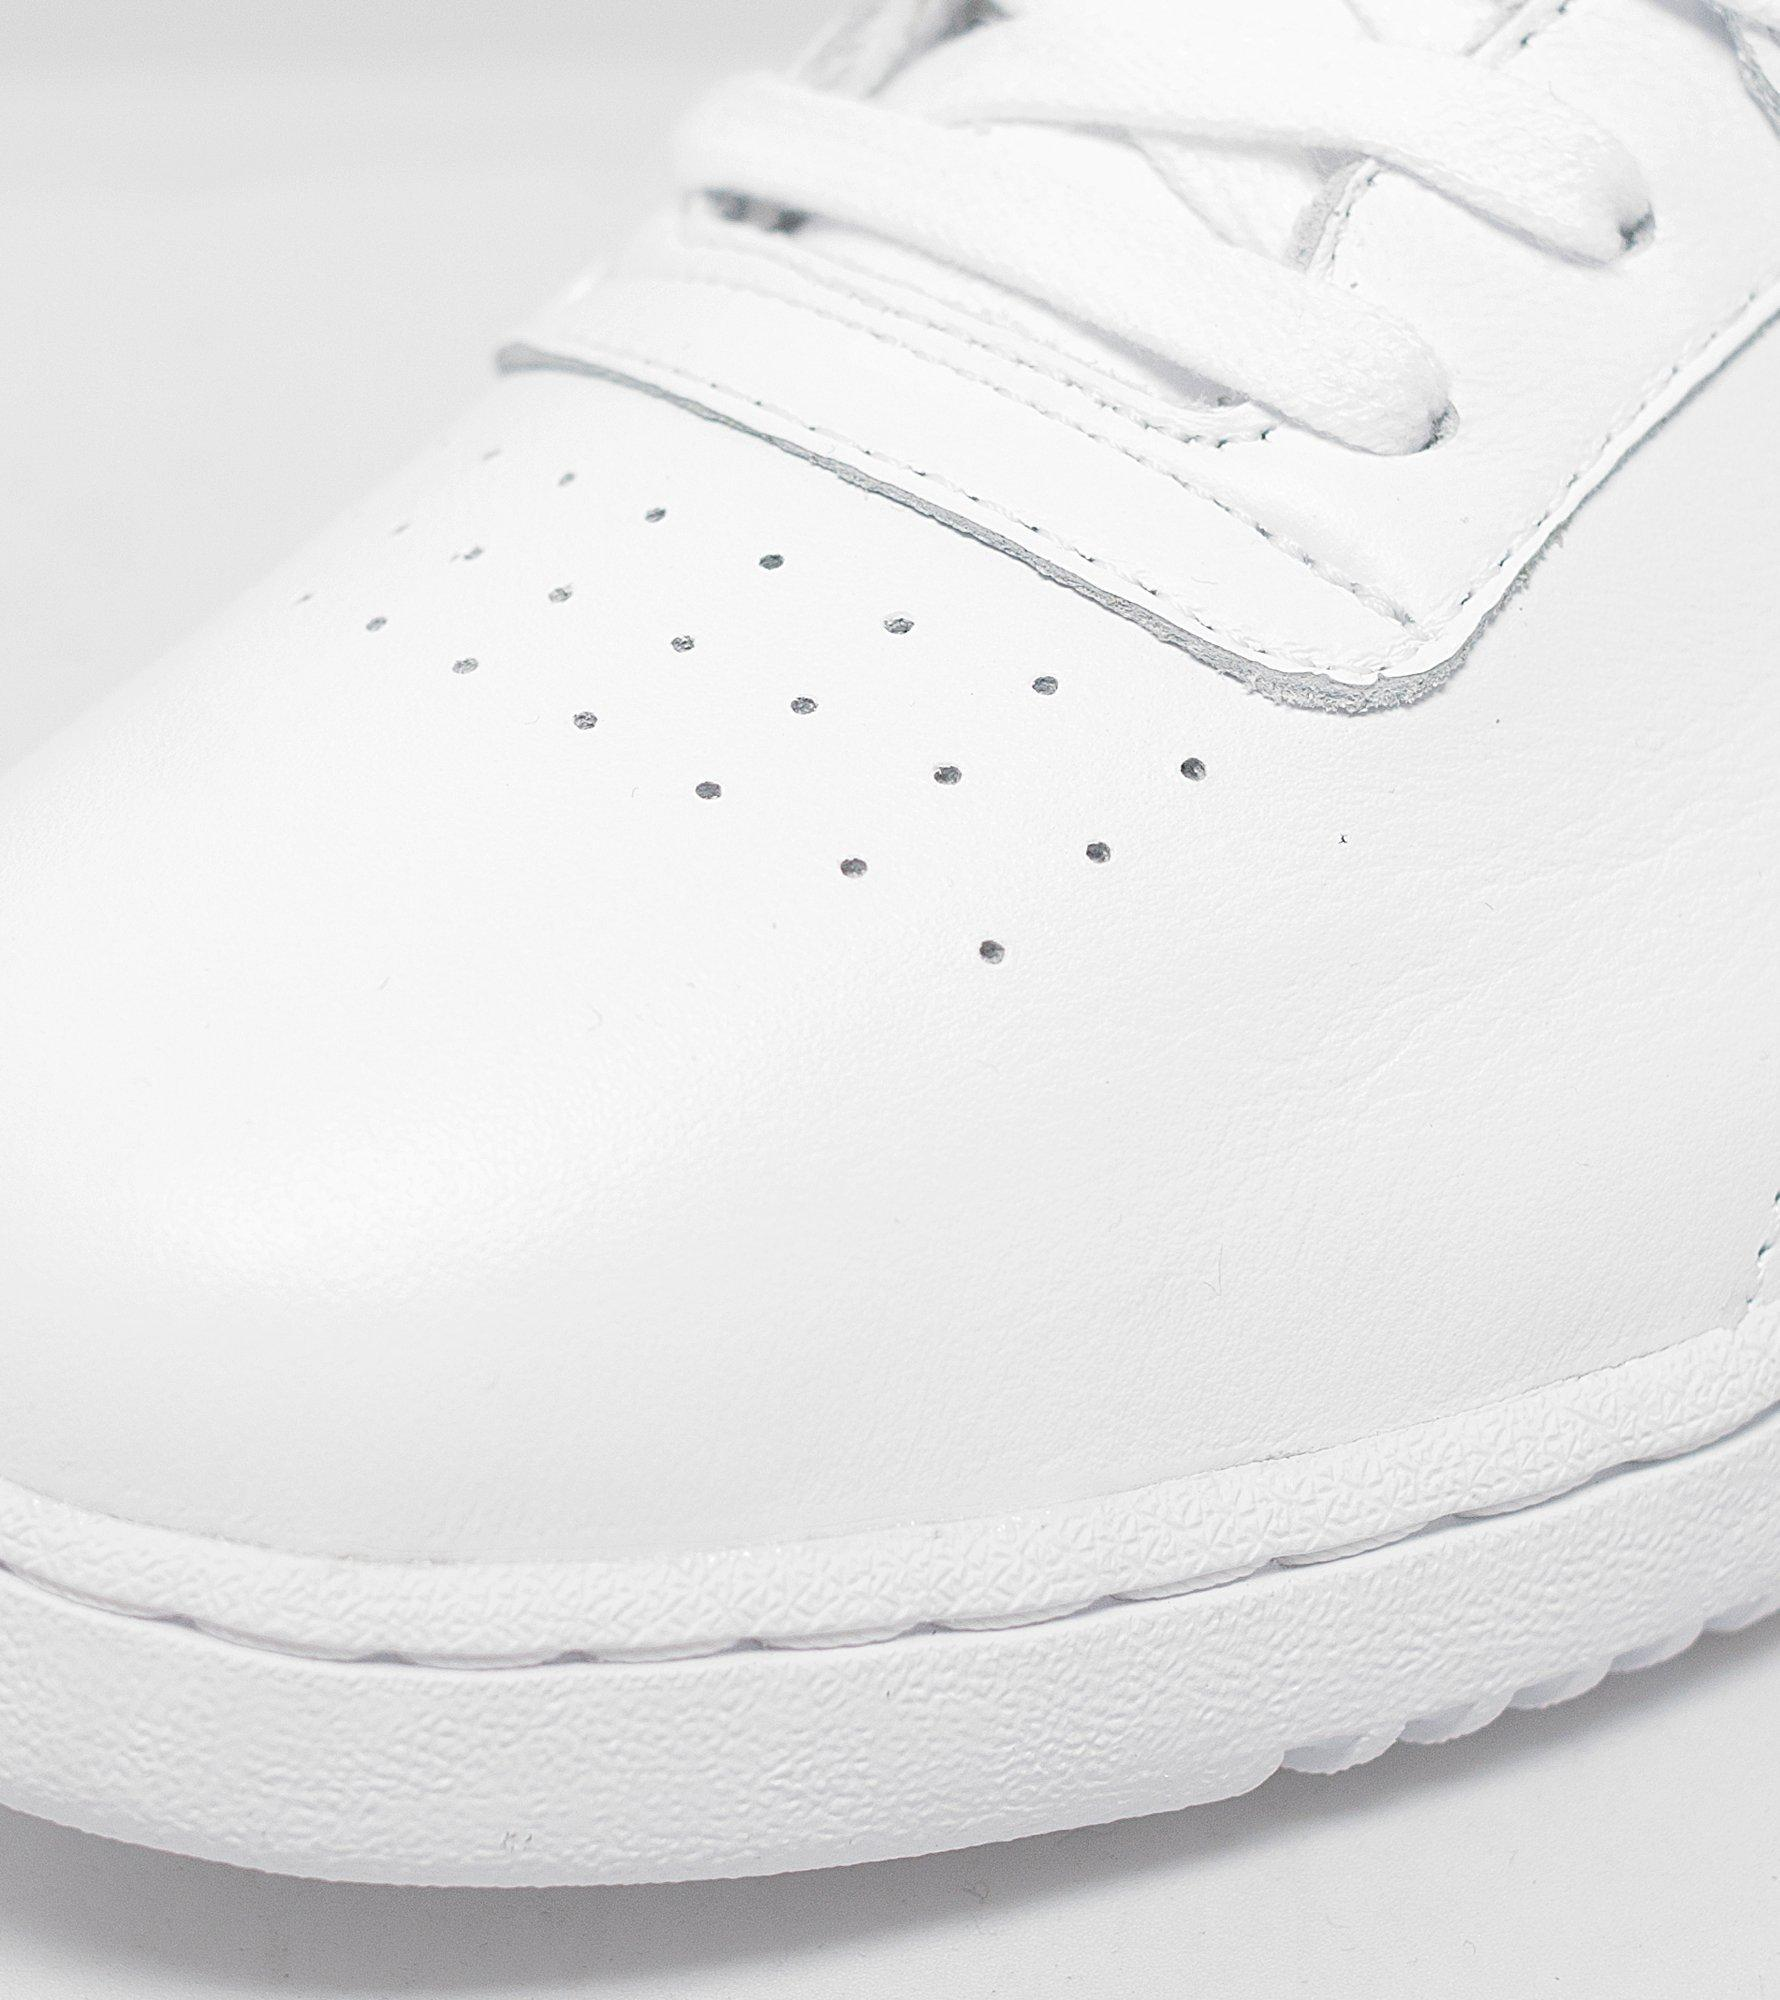 Lyst - Reebok Workout Lo Clean Pm in White for Men 42fca5039